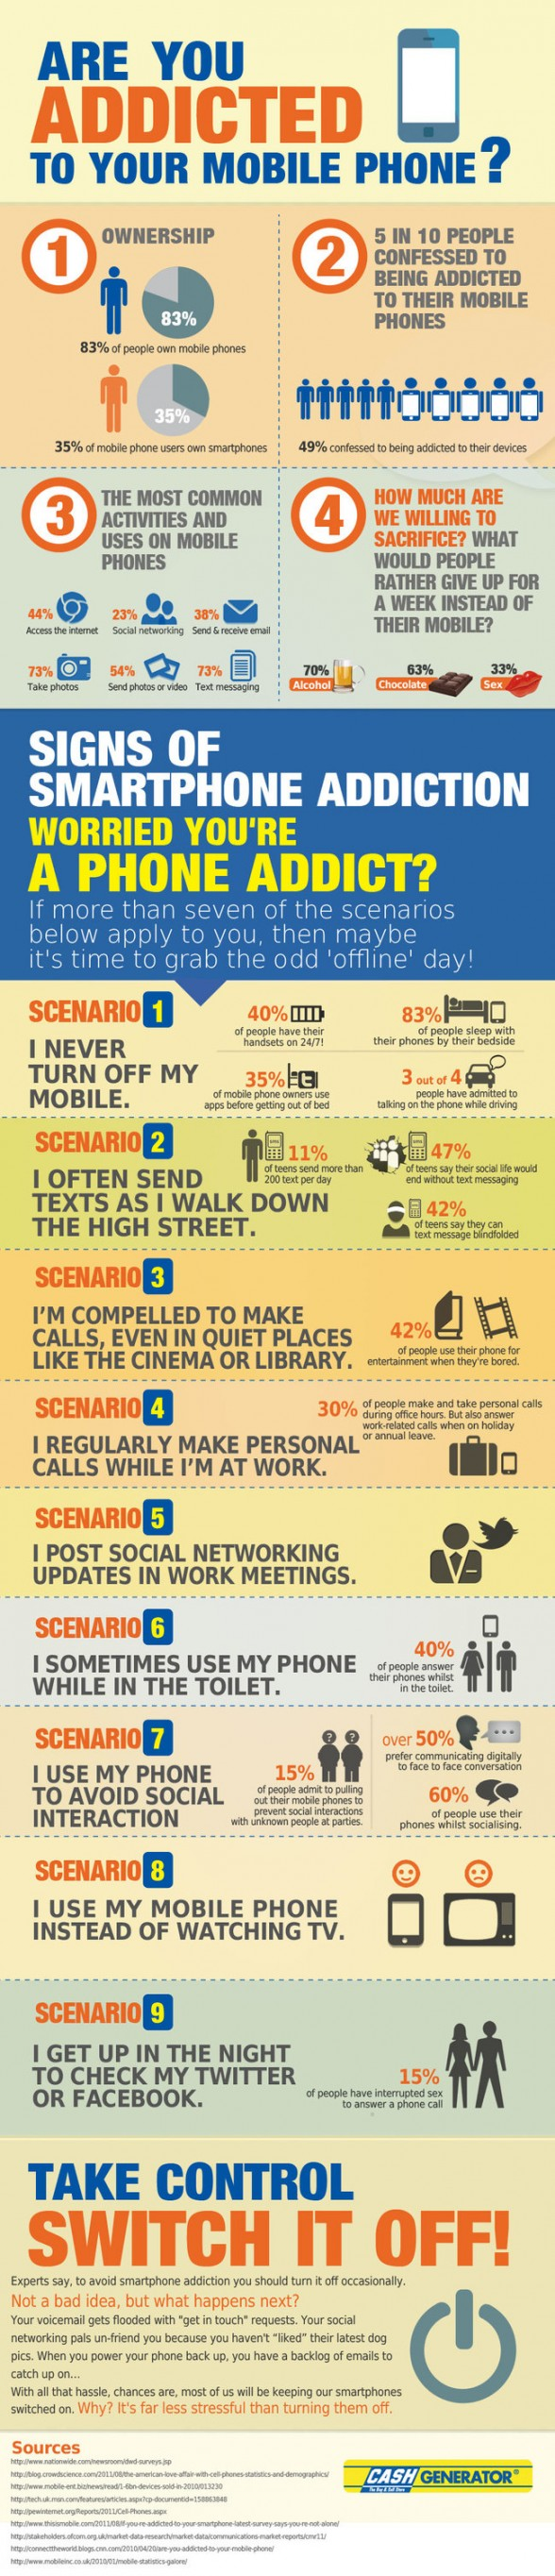 are-you-addicted-to-your-mobile-phone.jpg